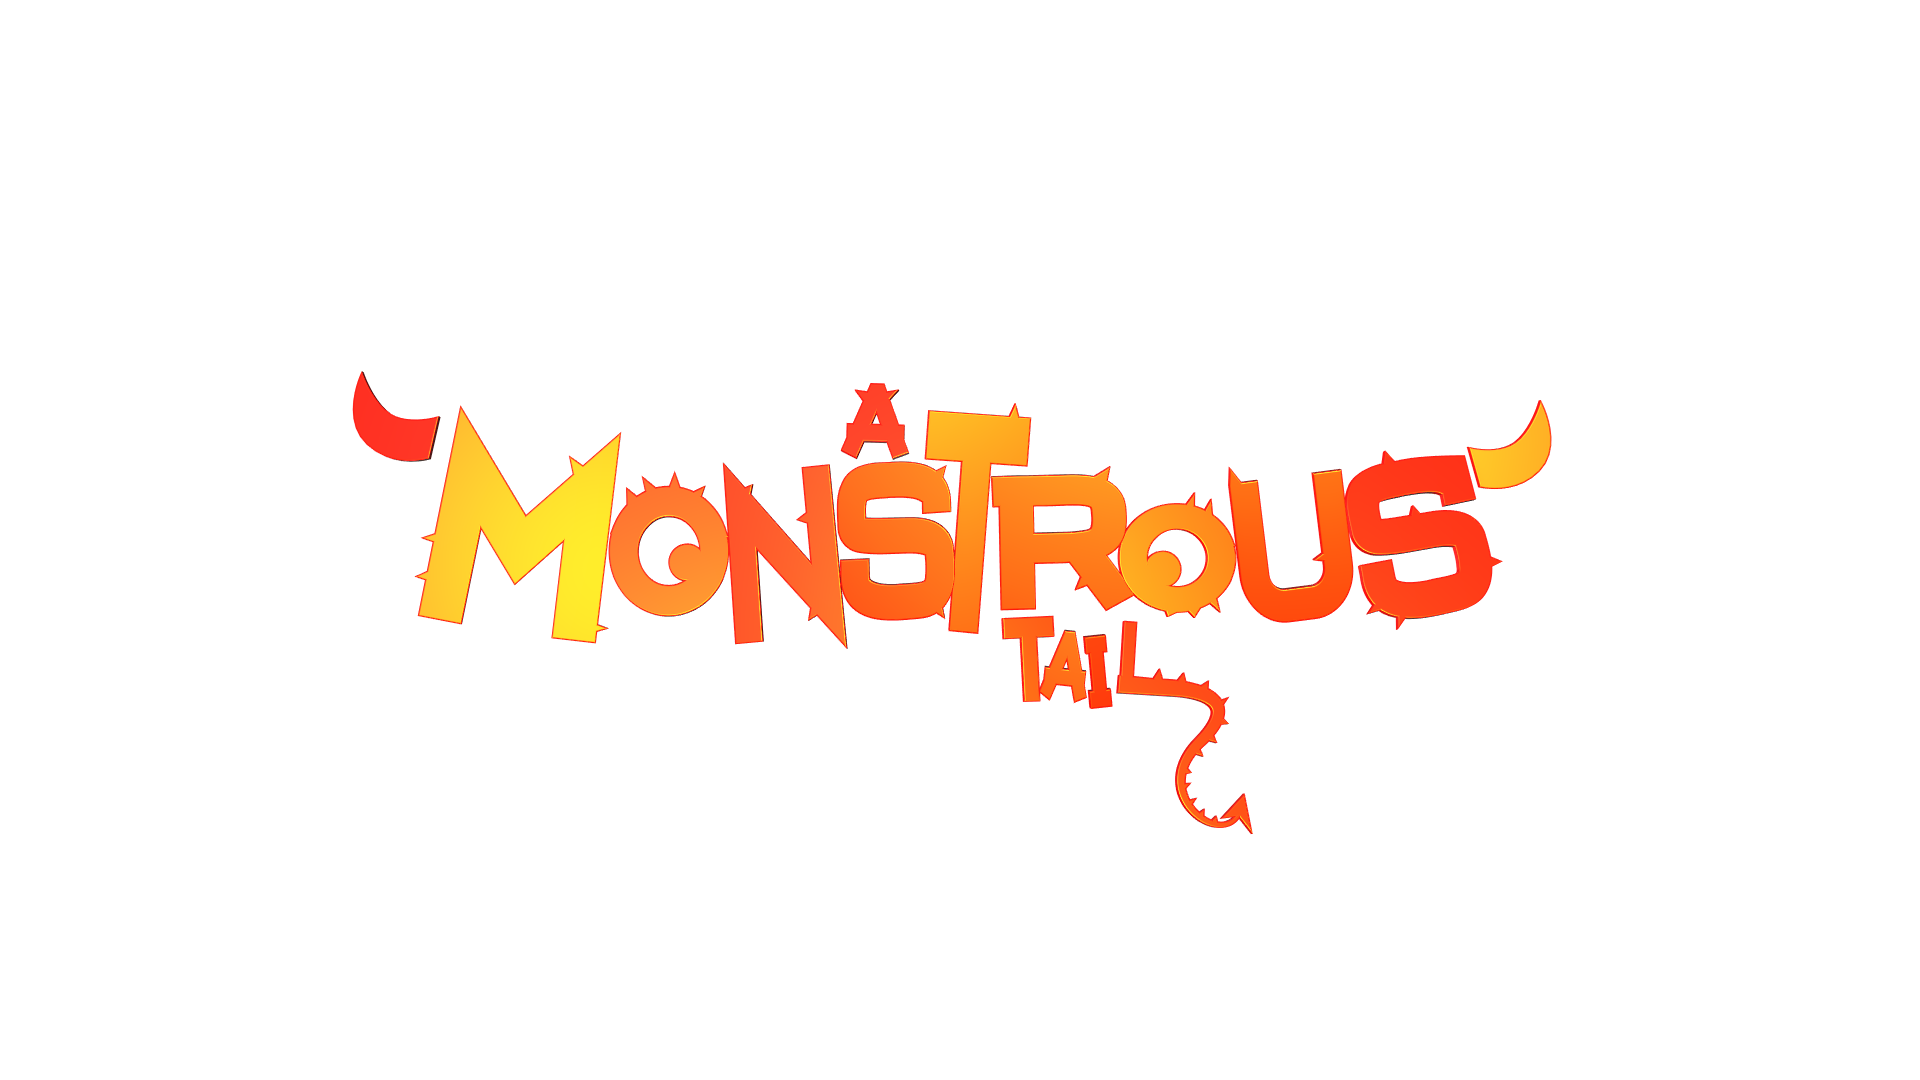 MONSTROUS_LOGO_no_shadow.png